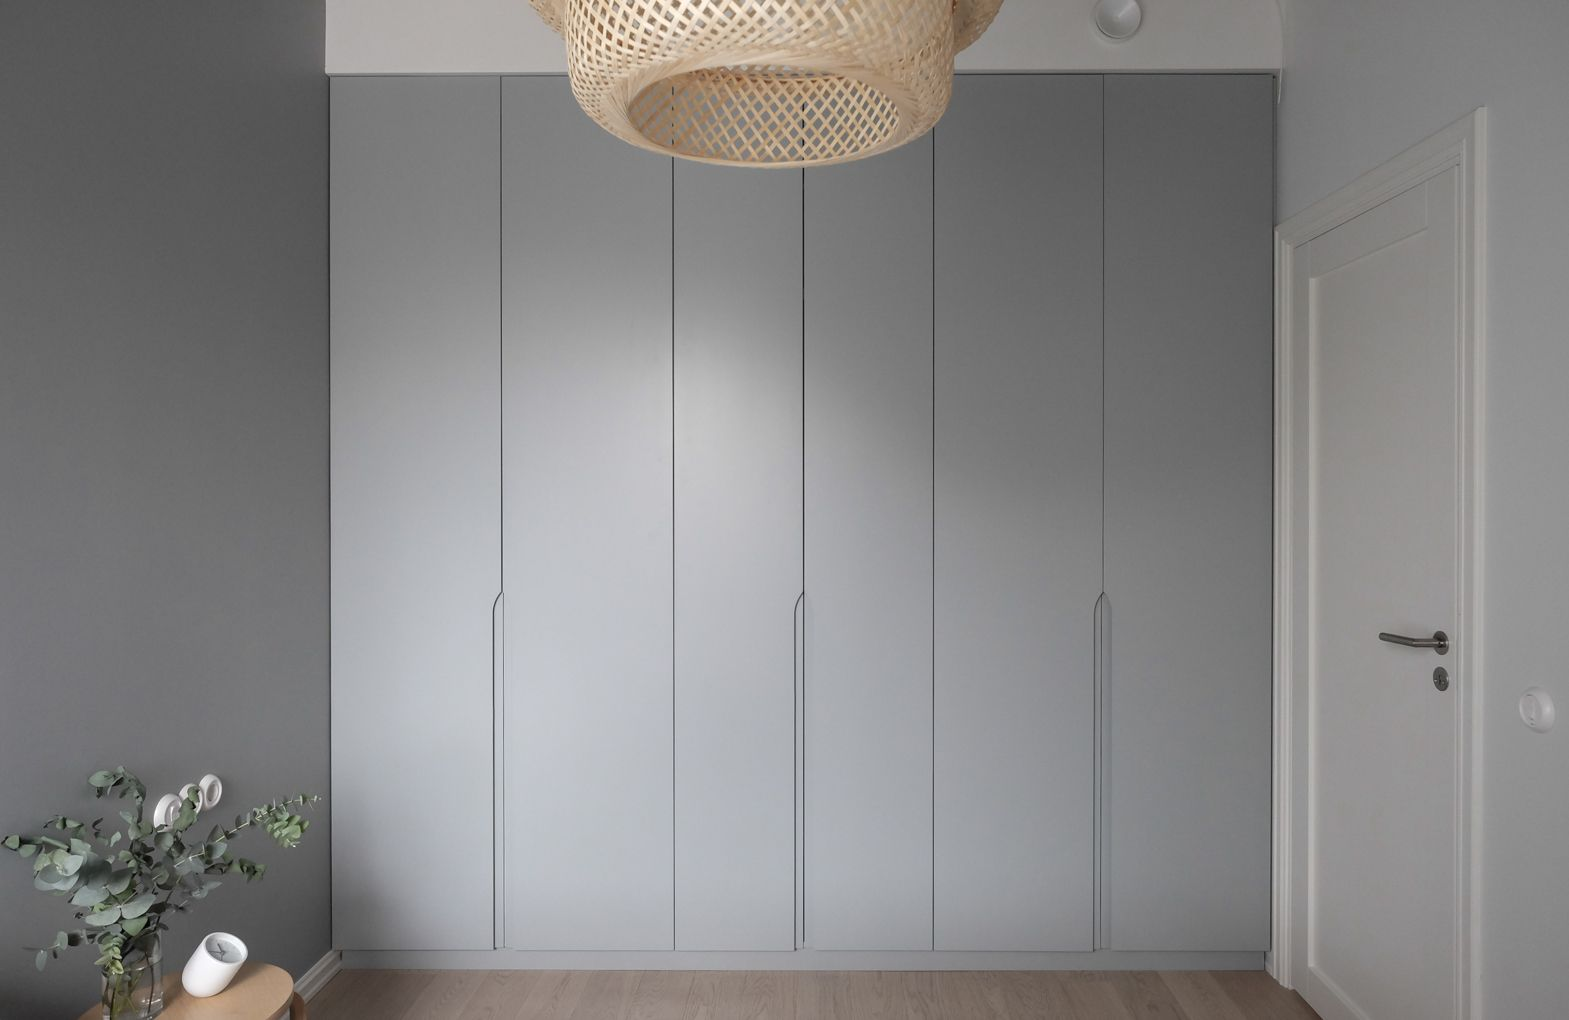 Minimalist Built In Wardrobe Grey Doors With Recessed